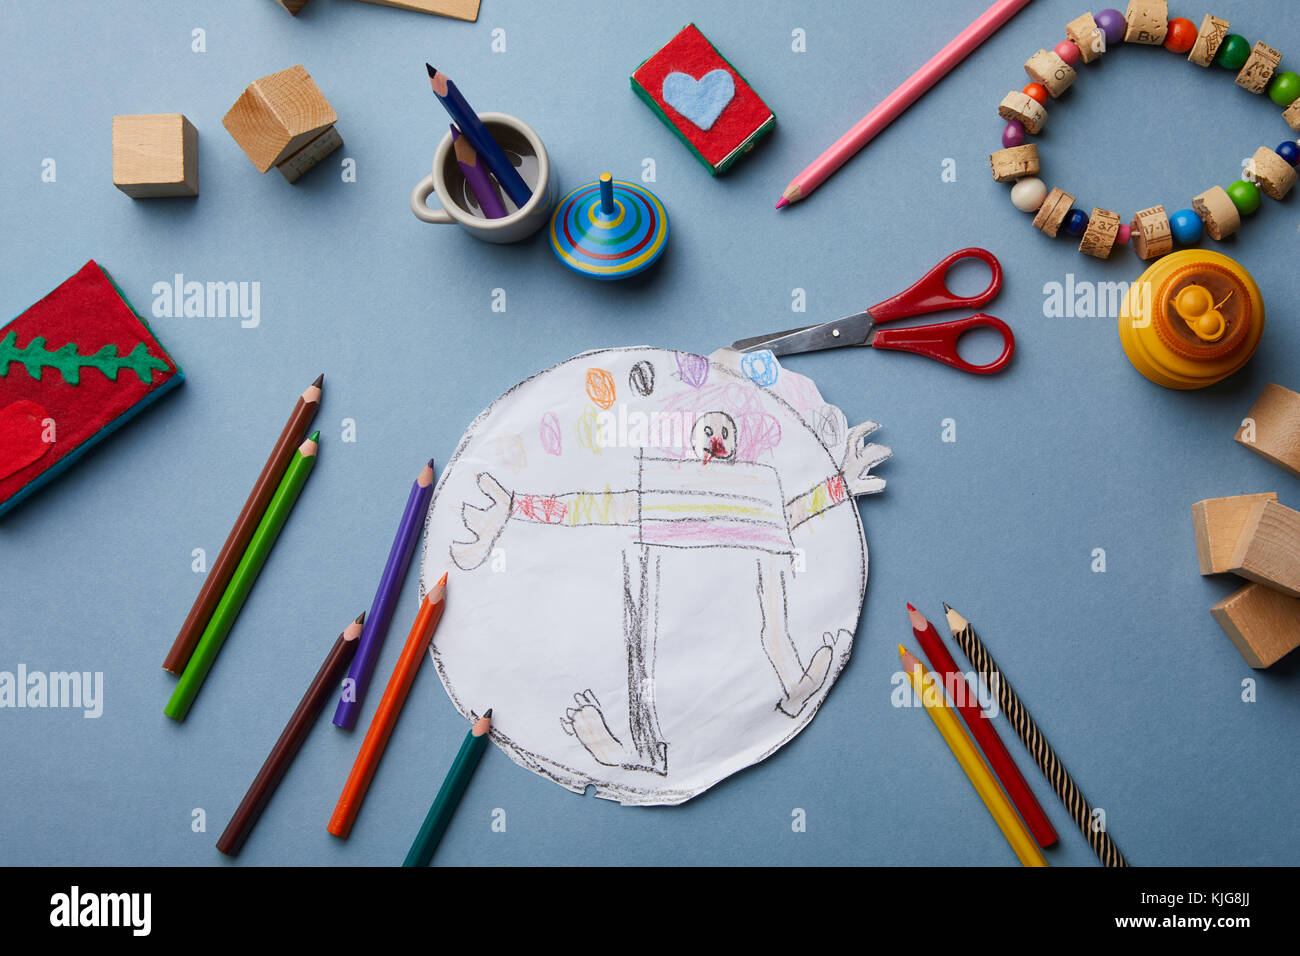 Child's drawing, coloured pencils and accessories - Stock Image